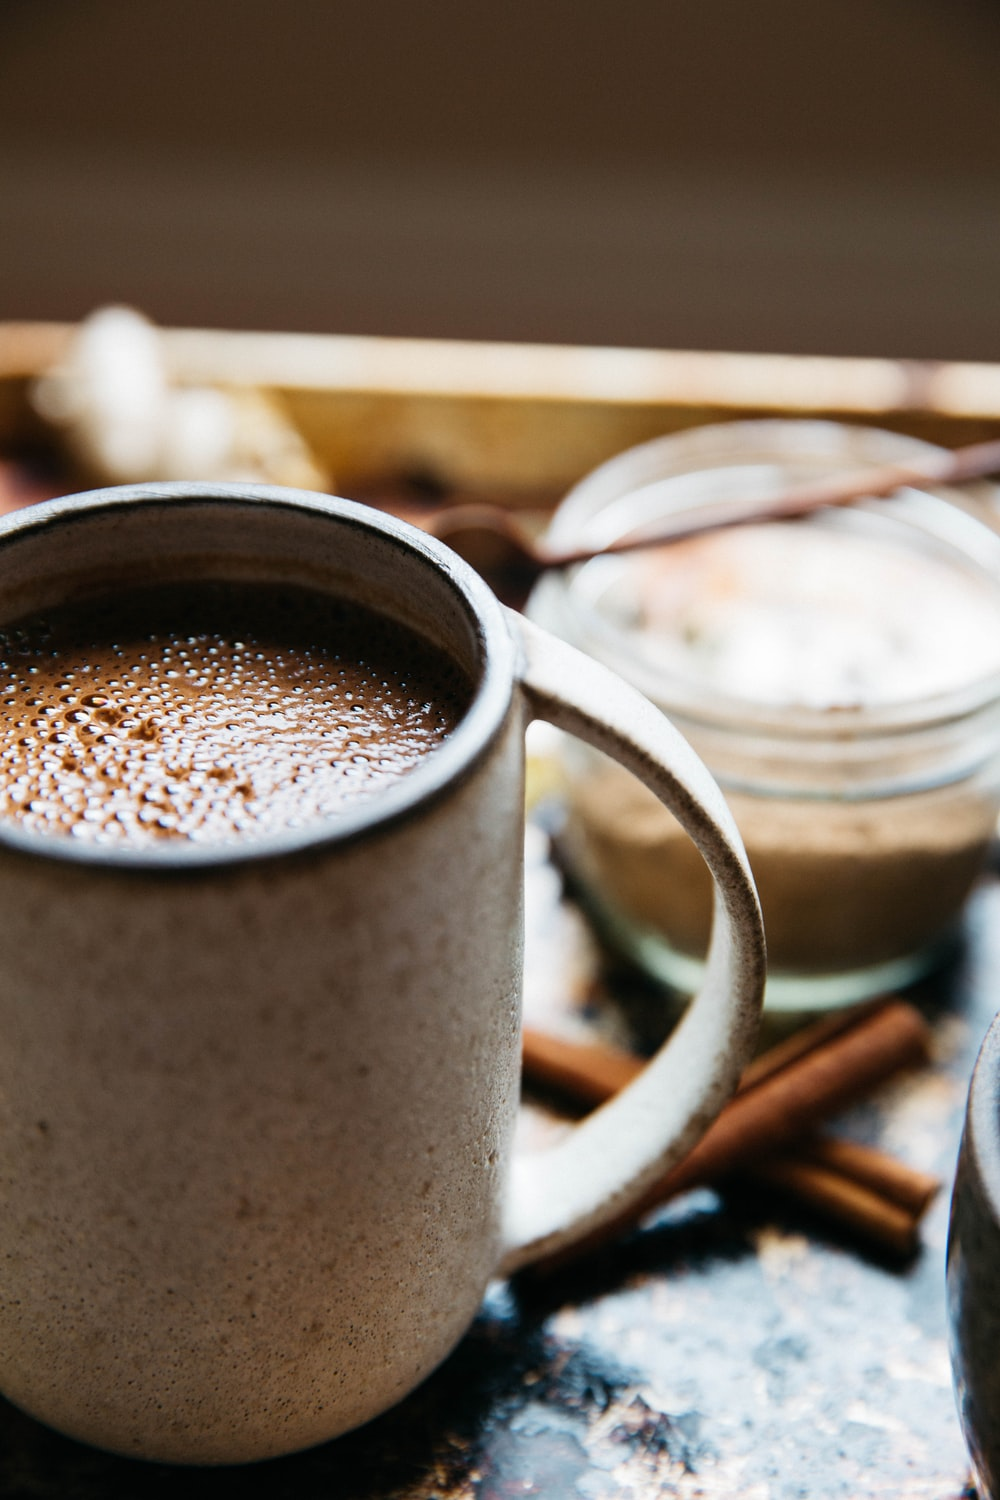 beige mug with hot chocolate near cinnamon sticks on surface